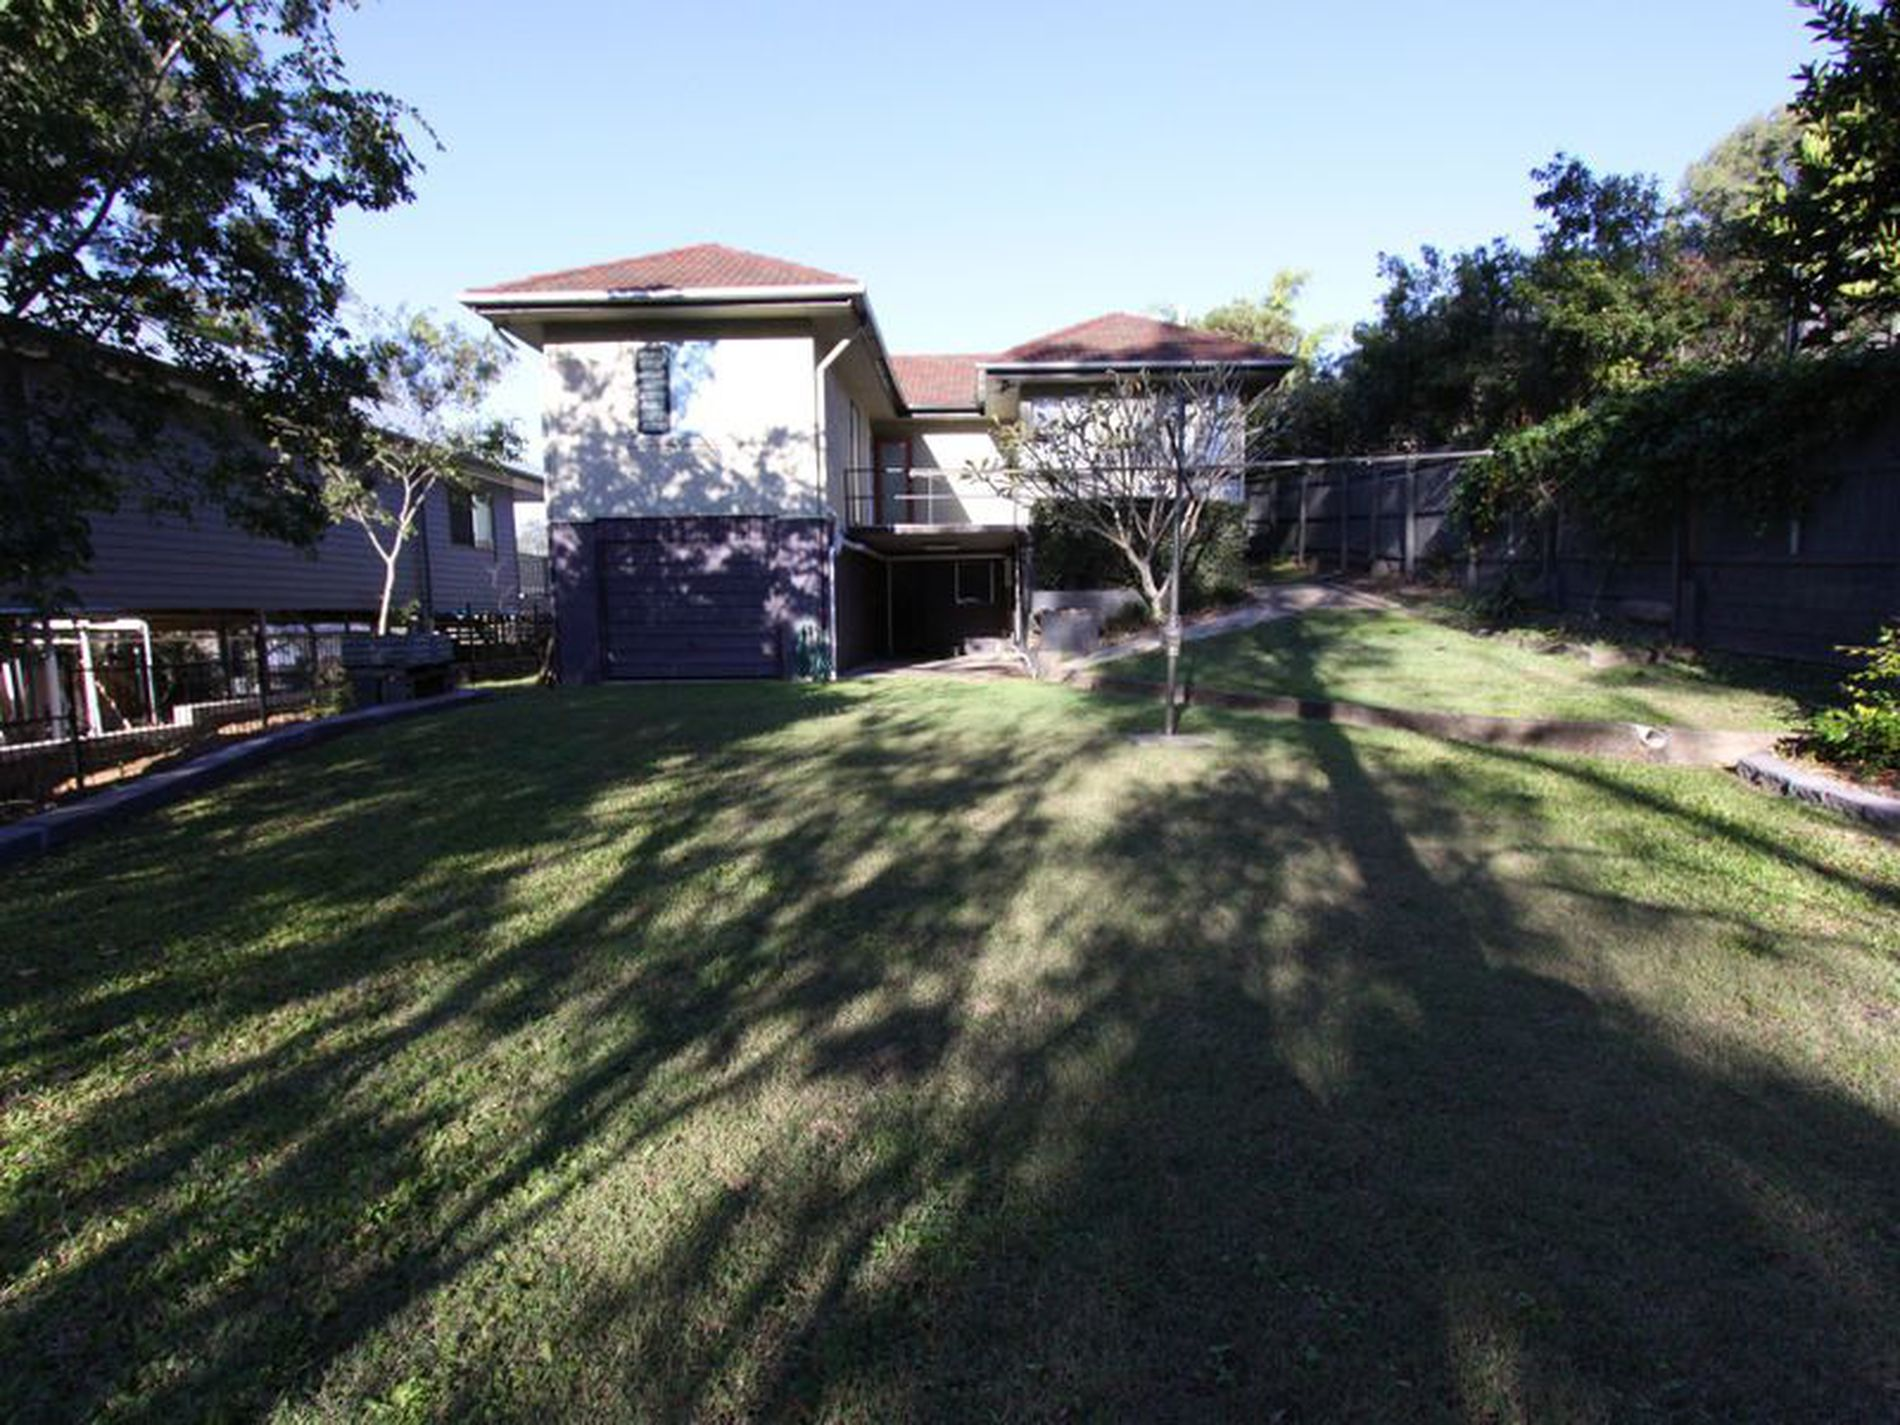 111 Market Street South, Indooroopilly